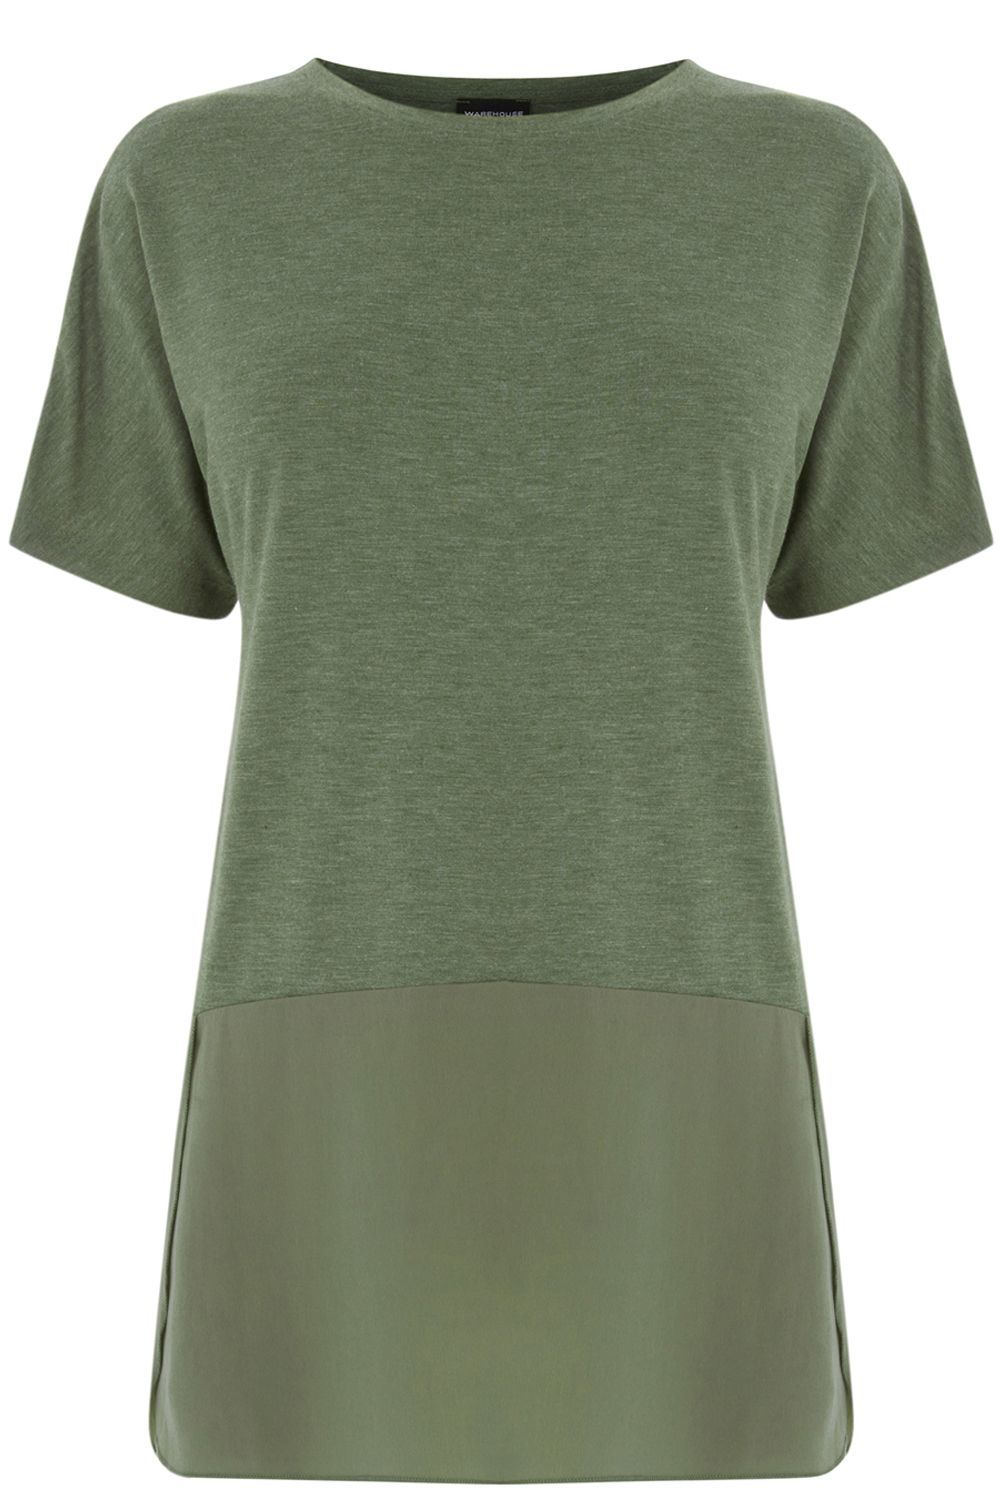 Woven Mix Short Sleeved Top, Khaki - neckline: round neck; pattern: plain; length: below the bottom; predominant colour: khaki; occasions: casual; style: top; fibres: polyester/polyamide - 100%; fit: body skimming; sleeve length: short sleeve; sleeve style: standard; pattern type: fabric; texture group: jersey - stretchy/drapey; season: s/s 2016